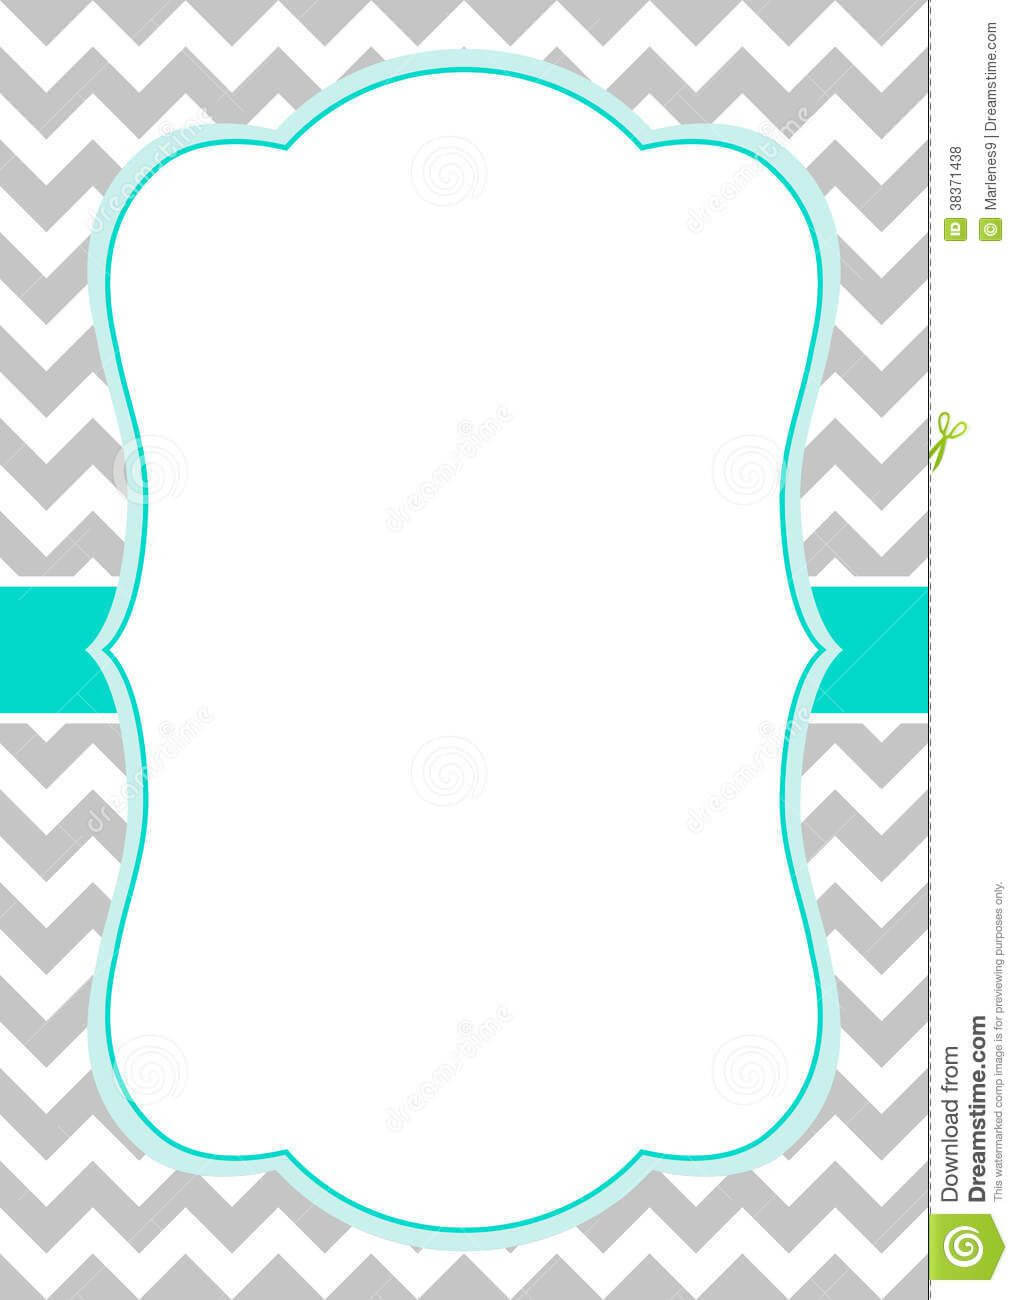 Blank Invitation Templates Free For Word : Blank Party Regarding Blank Templates For Invitations